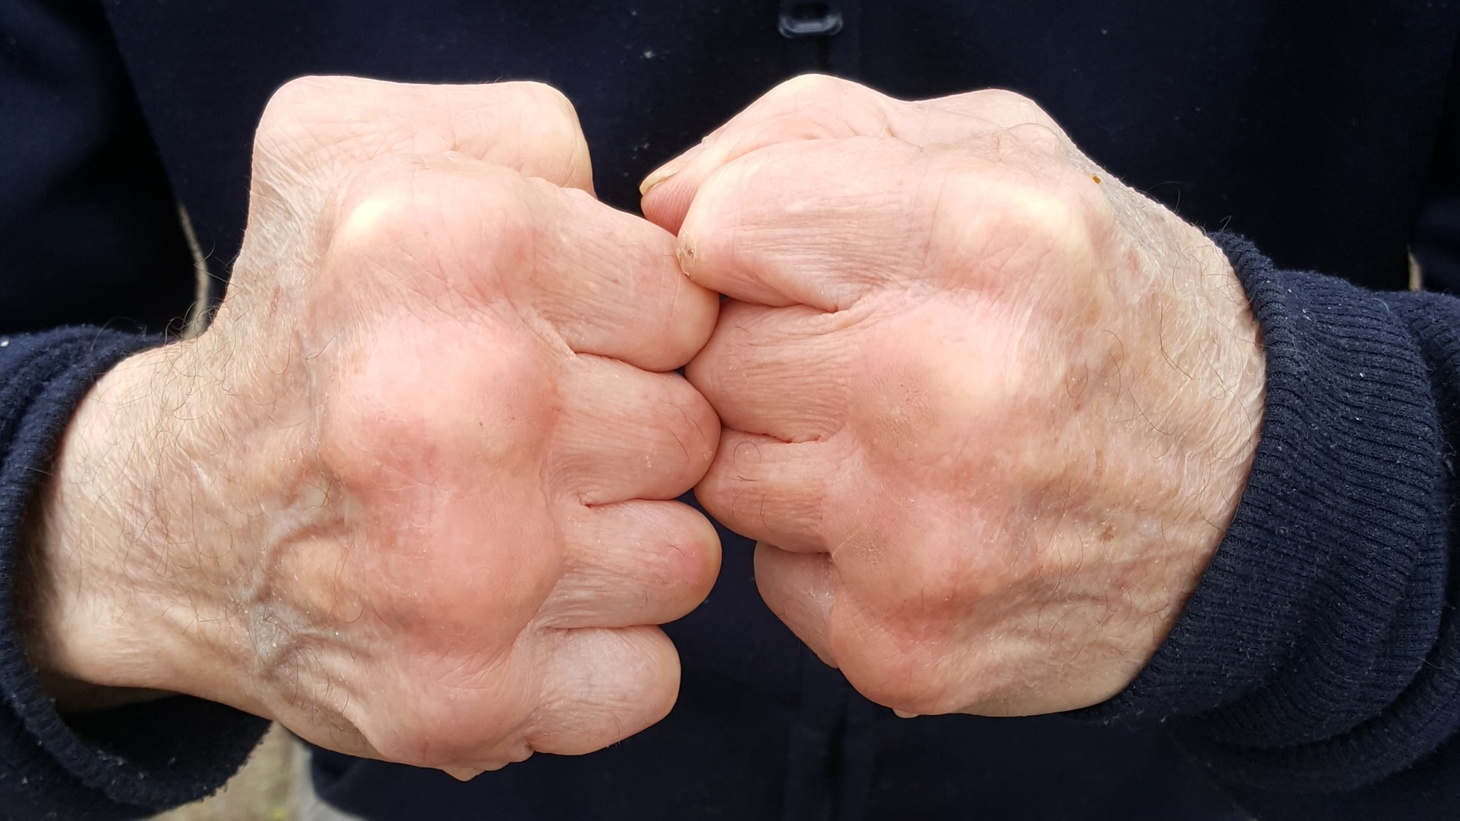 Johnny punches steel. Everybody in the neighborhood knows it. That's where he got his nickname: Johnny Knuckles. But not everybody knows why he punches steel. The dark past that he's willing away with every blow to his favorite steel pole.